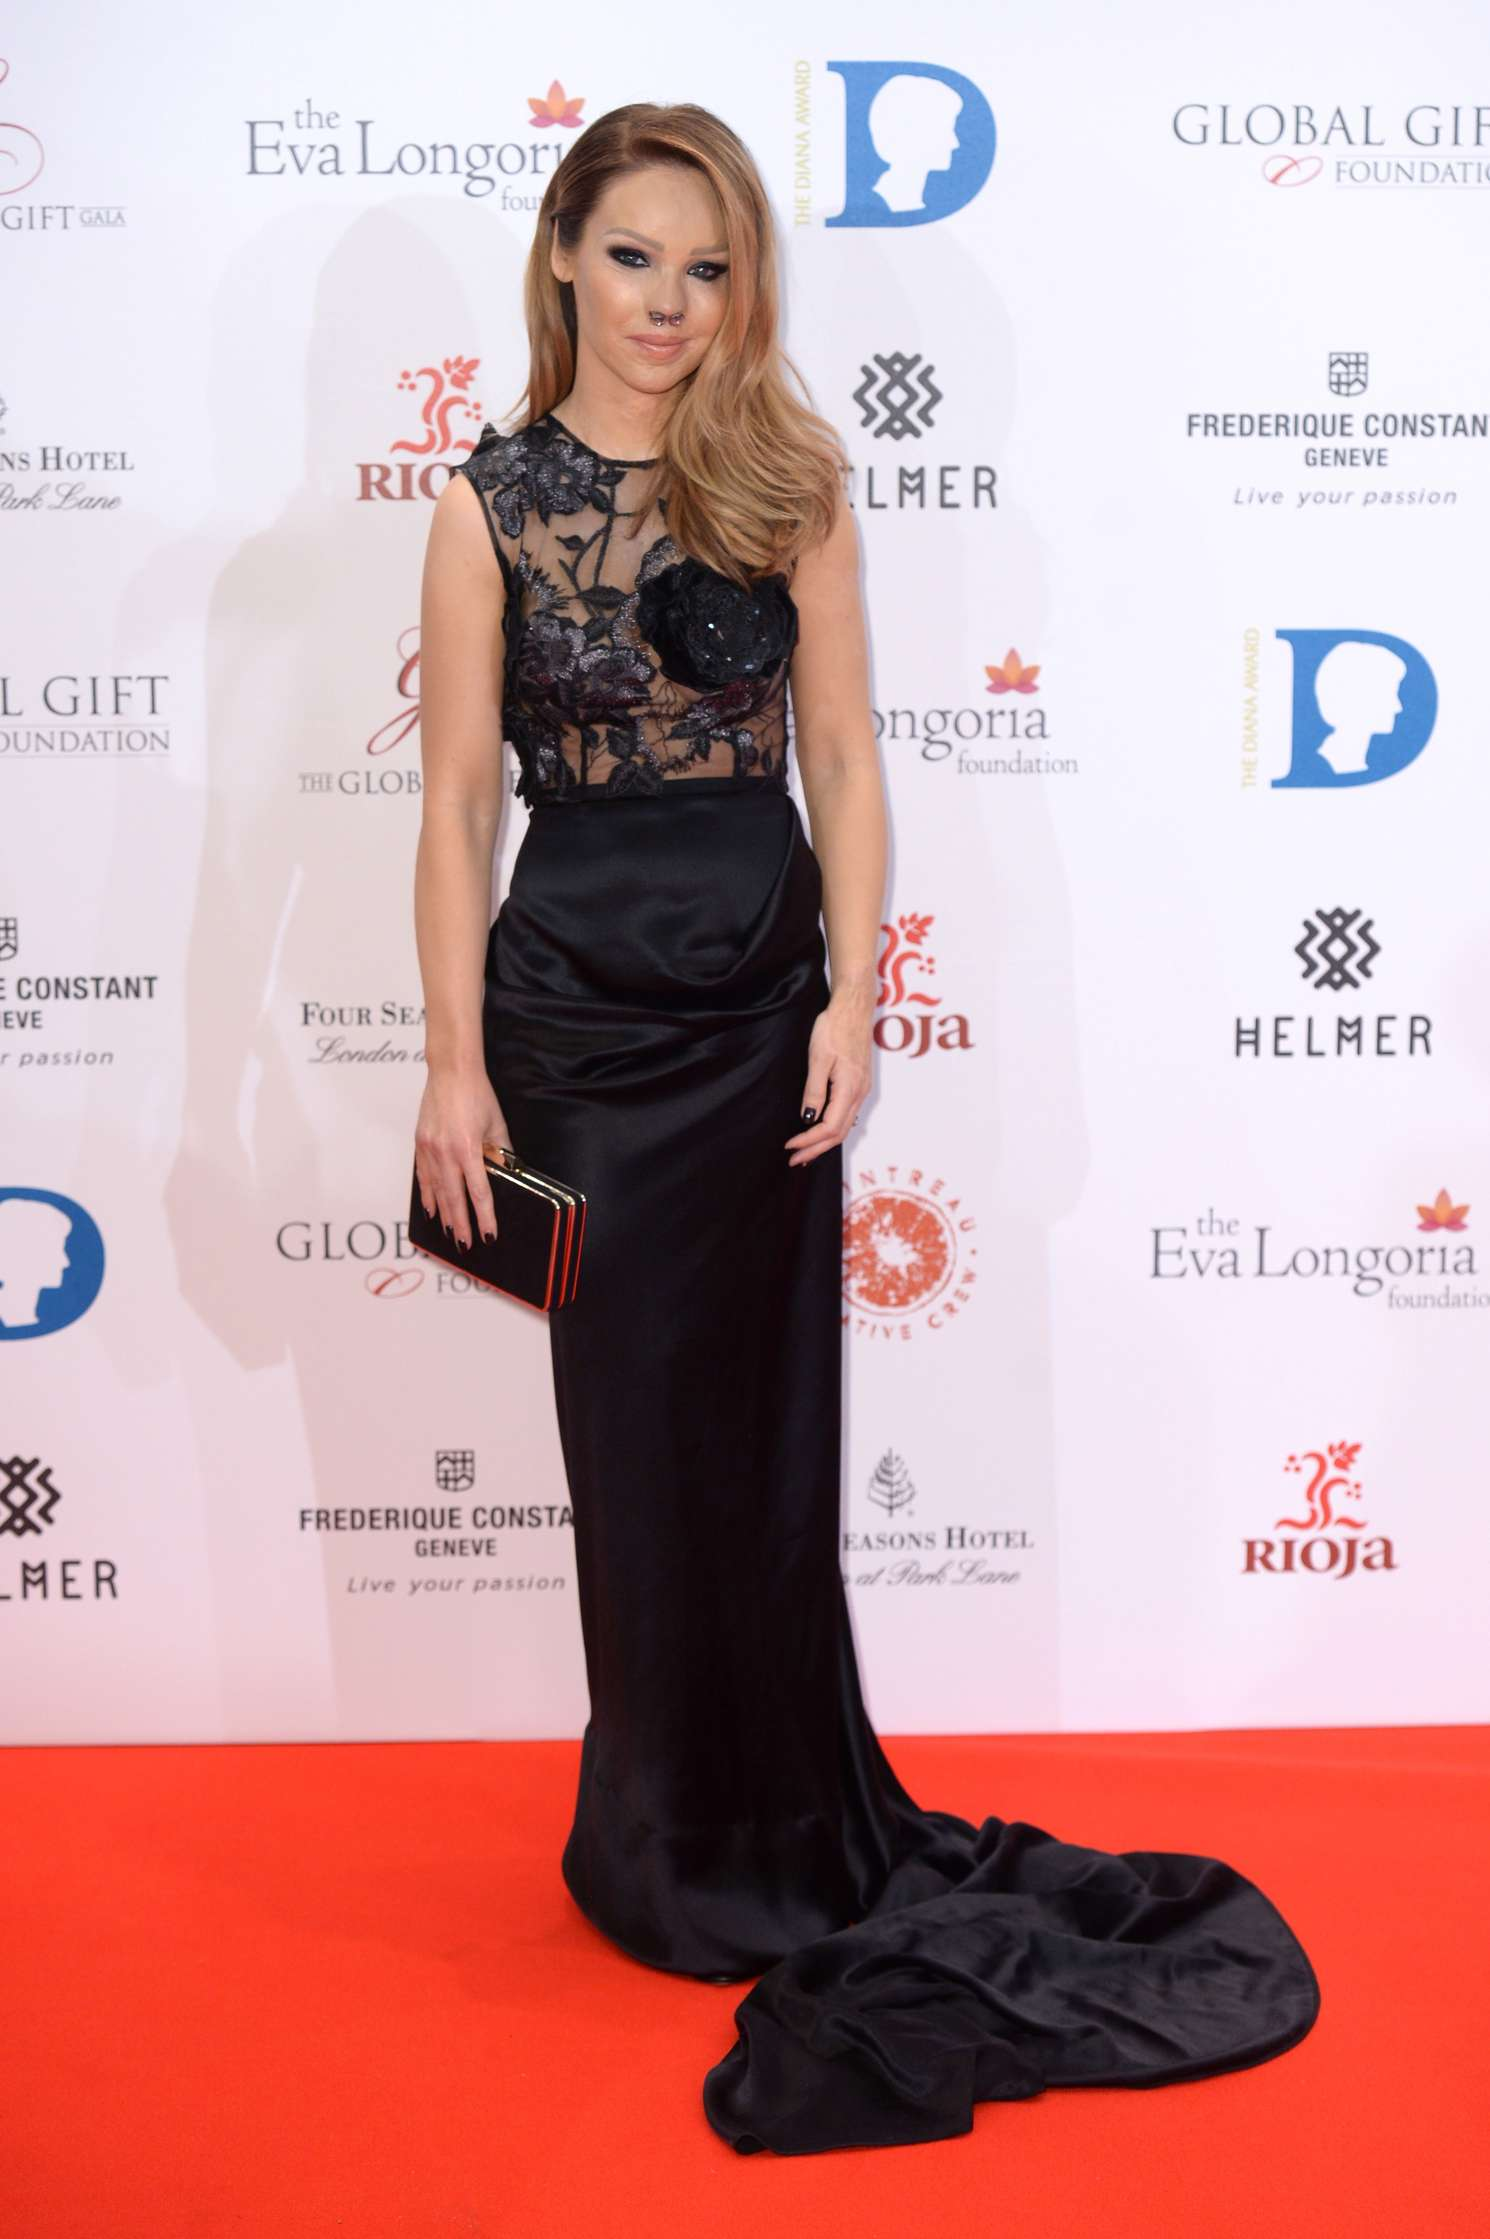 Katie Piper The Global Gift Gala in London adds